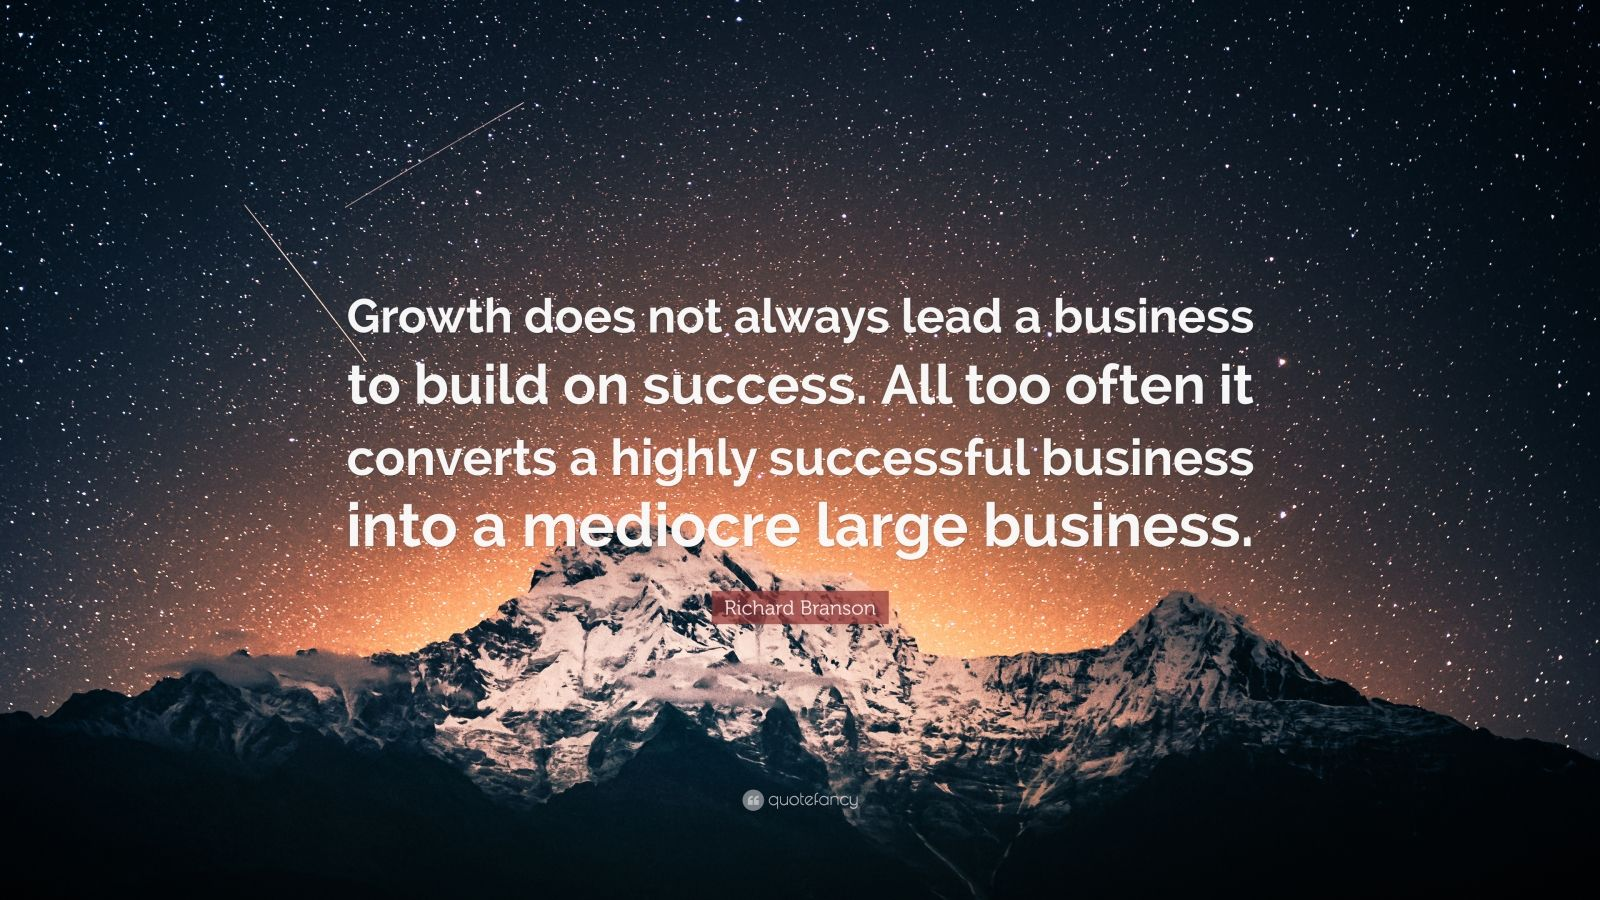 """Richard Branson Quote: """"Growth does not always lead a business to build on success. All too often it converts a highly successful business into a mediocre large business."""""""